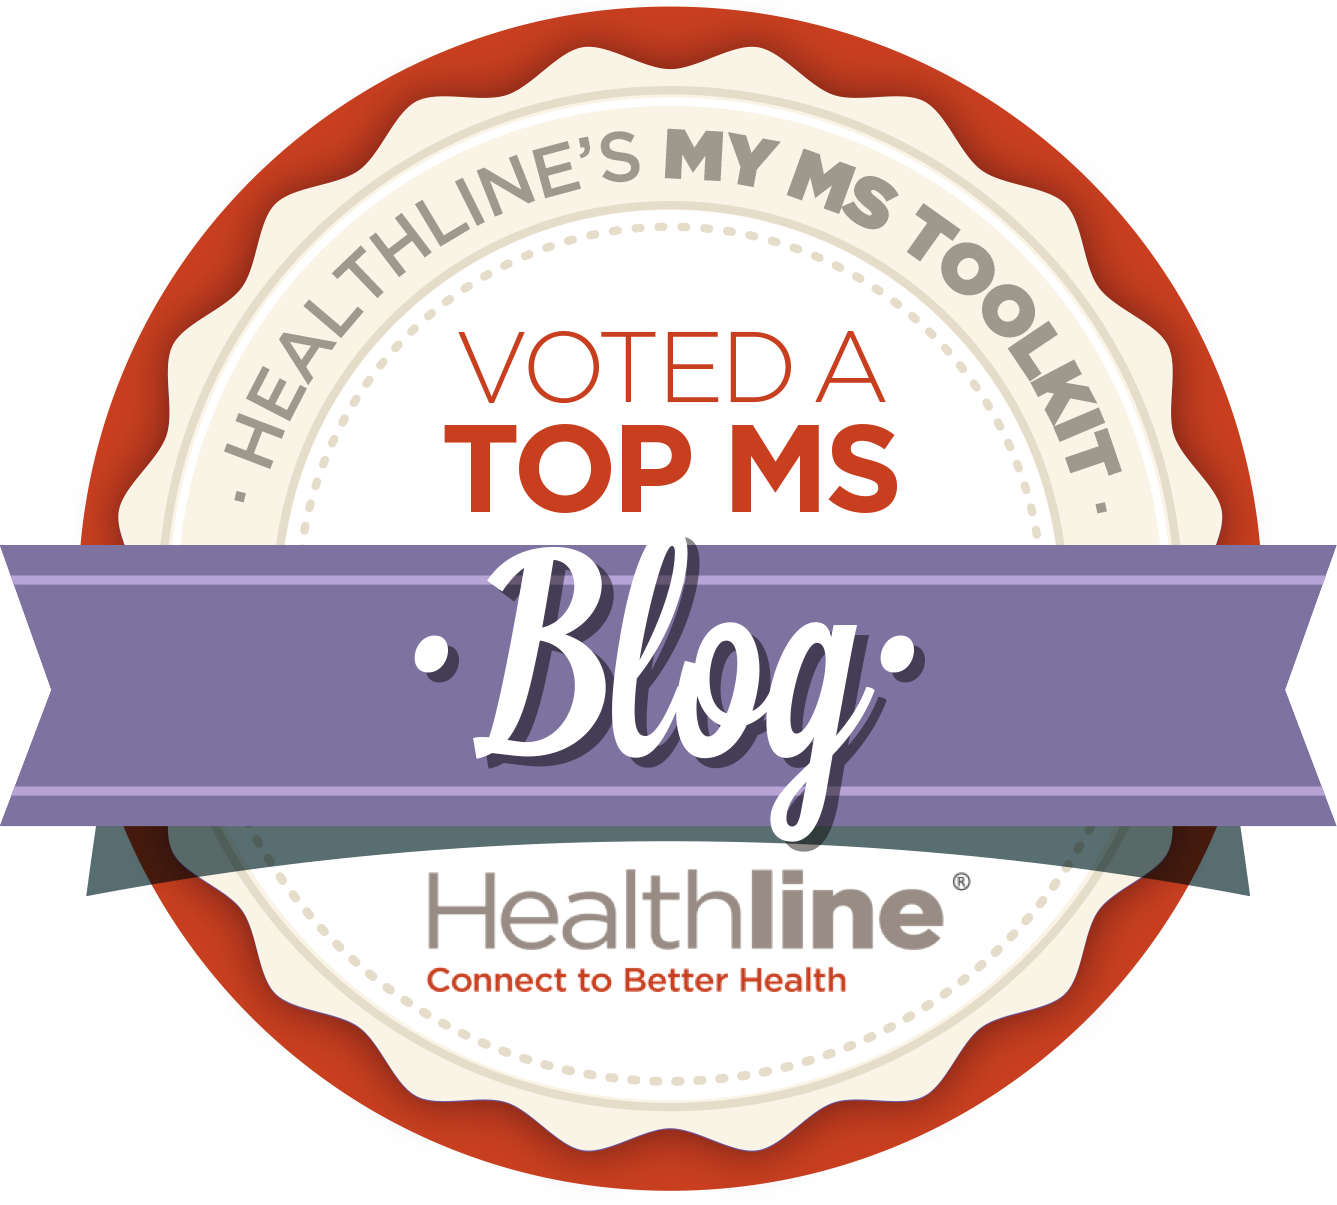 Top MS Blog by Healthline